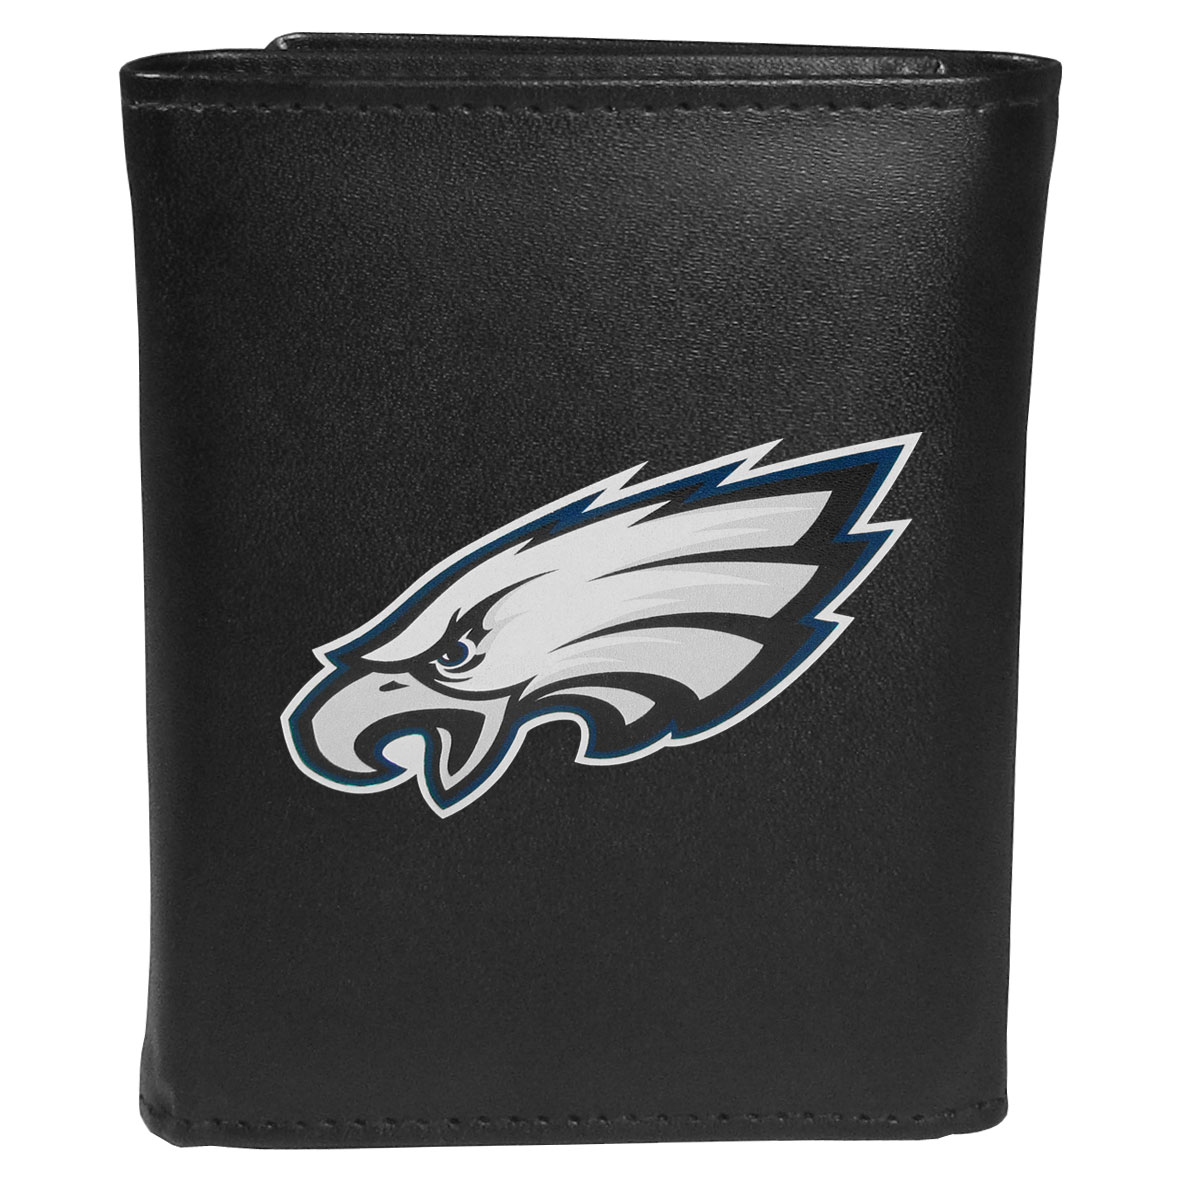 Philadelphia Eagles Leather Tri-fold Wallet, Large Logo - Our classic fine leather tri-fold wallet is meticulously crafted with genuine leather that will age beautifully so you will have a quality wallet for years to come. This is fan apparel at its finest. The wallet is packed with organizational  features; lots of credit card slots, large billfold pocket, and a window ID slot. The front of the wallet features an extra large Philadelphia Eagles printed logo.